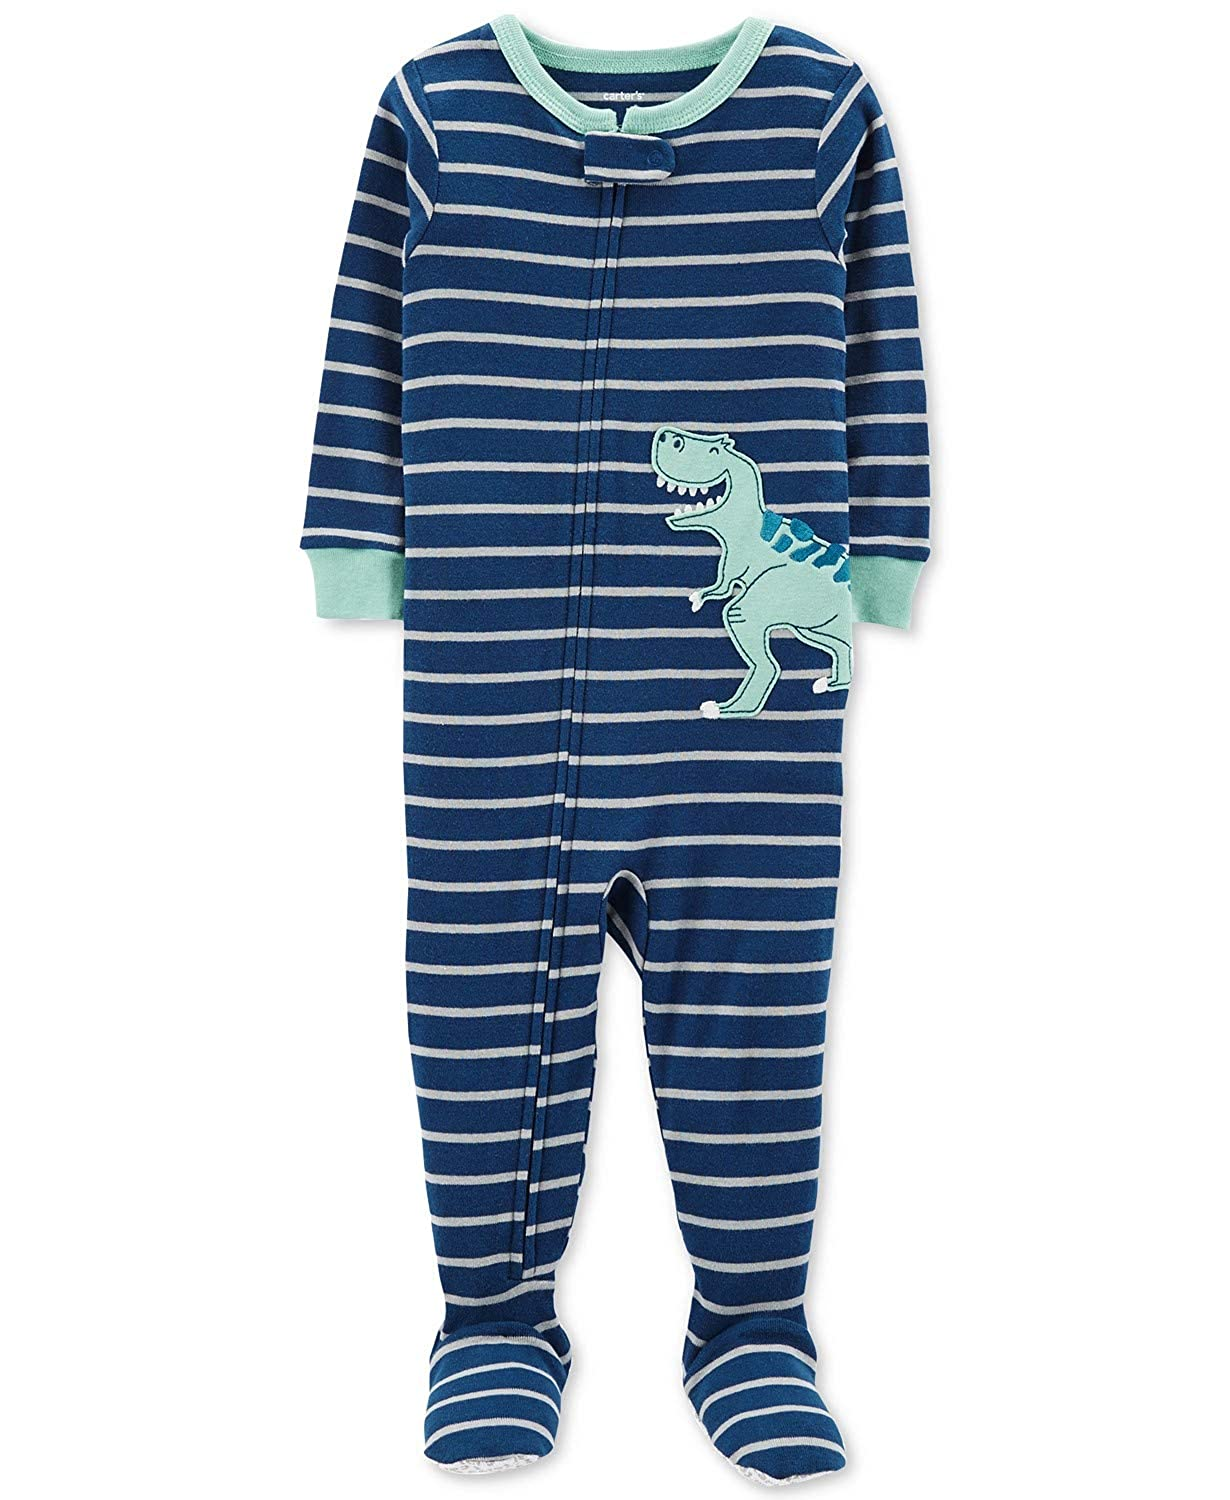 abeeee02e2fd Amazon.com  Carter s Baby Boys  1 Piece Cotton Footed Sleepers  Clothing